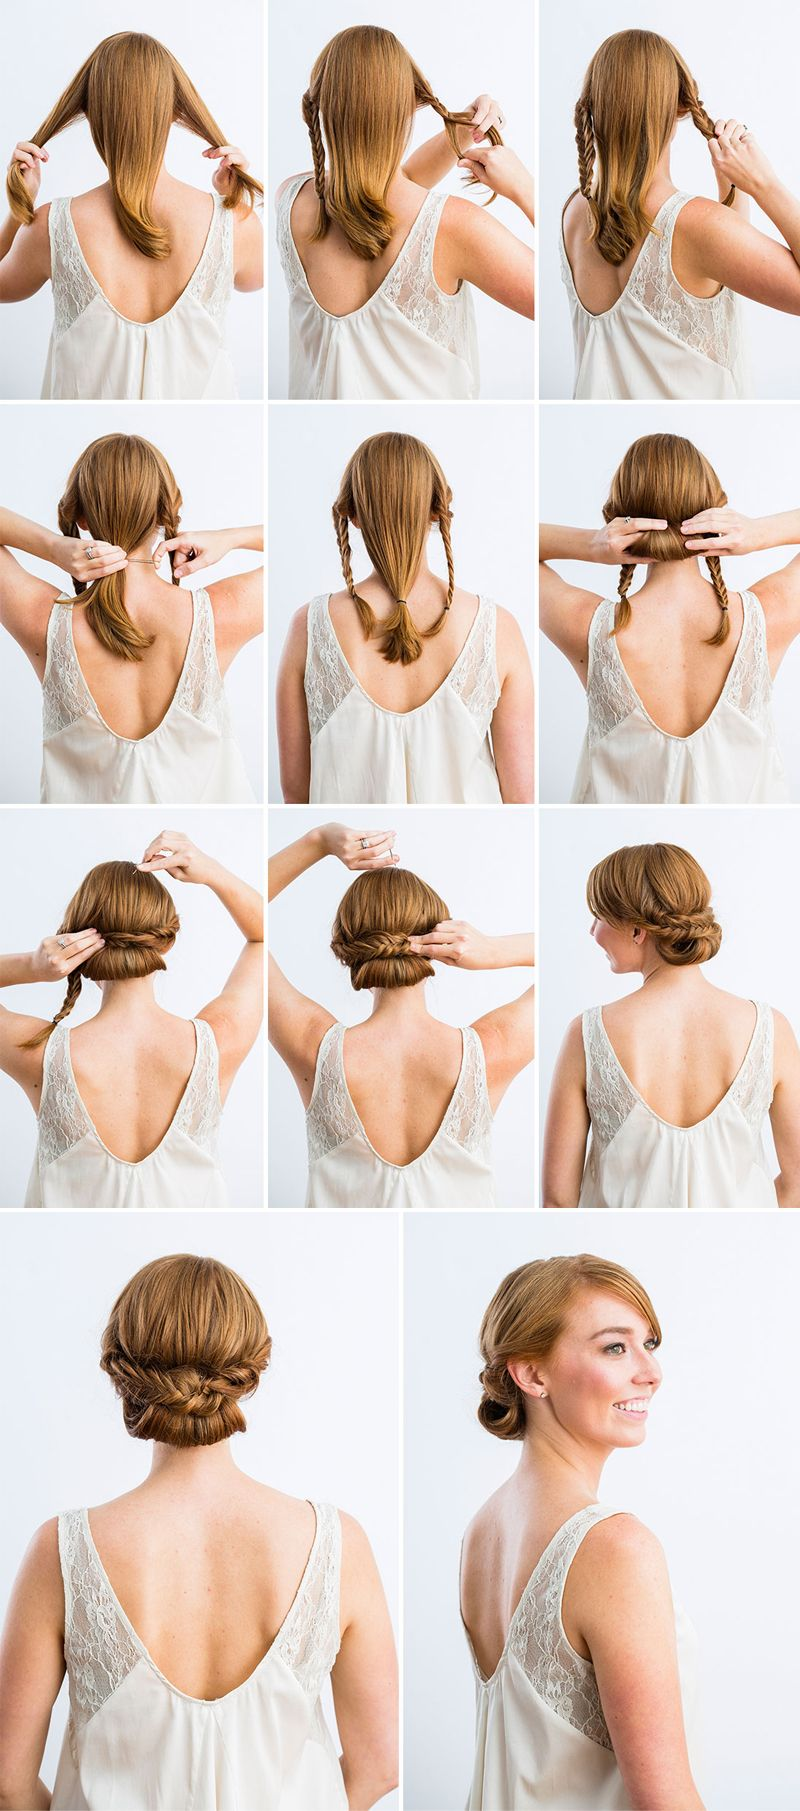 10 Best DIY Wedding Hairstyles with Tutorials | All About ...